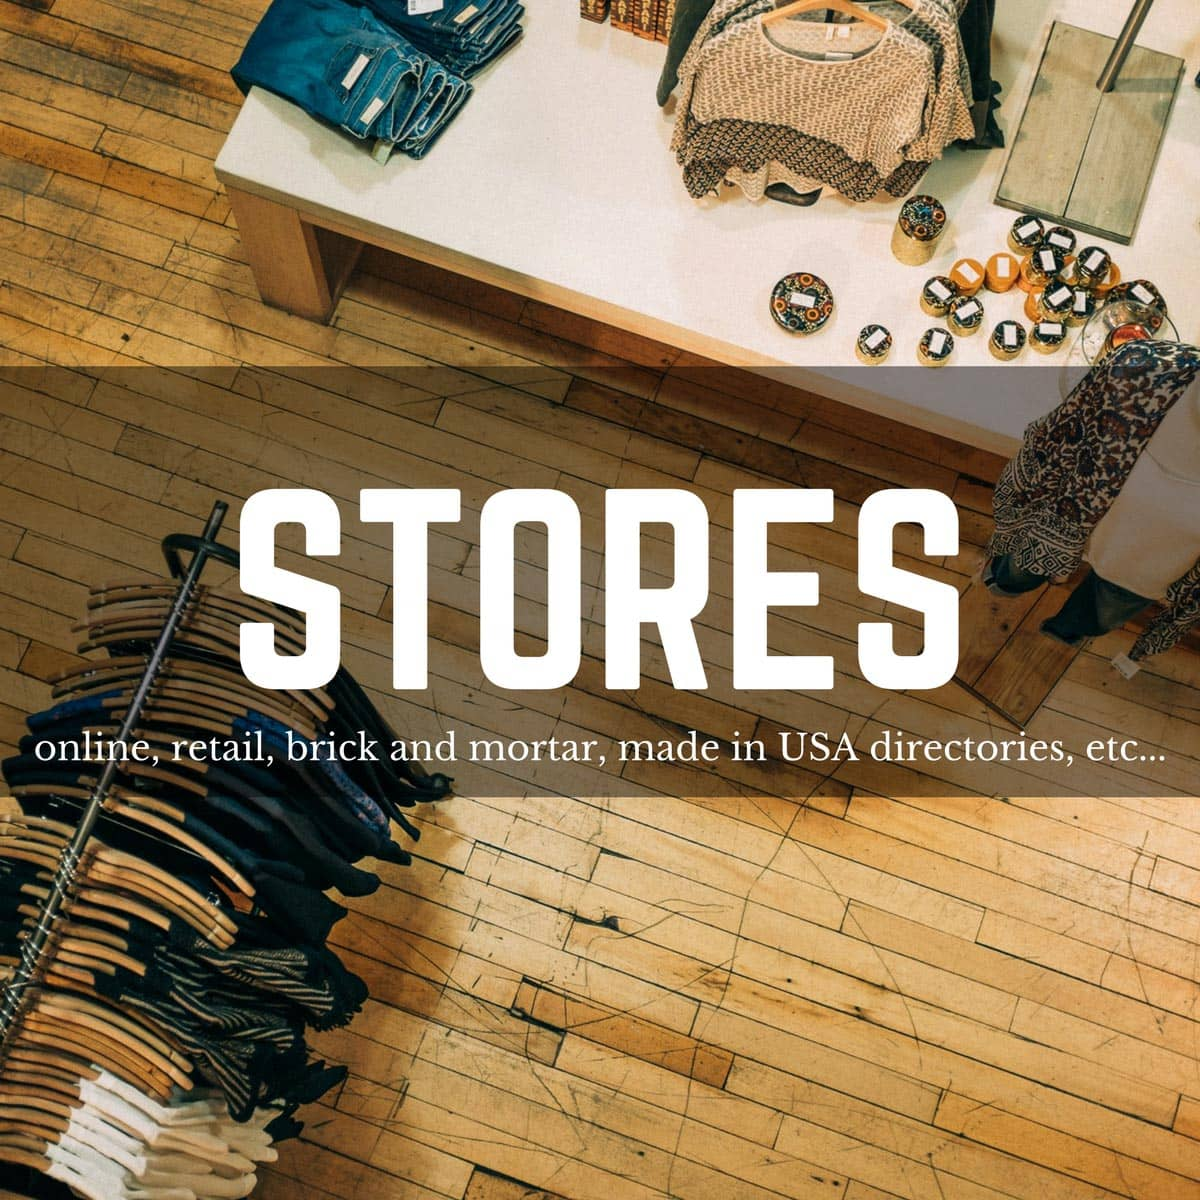 made in usa stores, american made stores, made in usa online stores, american made online stores, made in usa directories, american made directories, brick and mortar stores american made, brick and mortar stores made in usa, retail stores american made